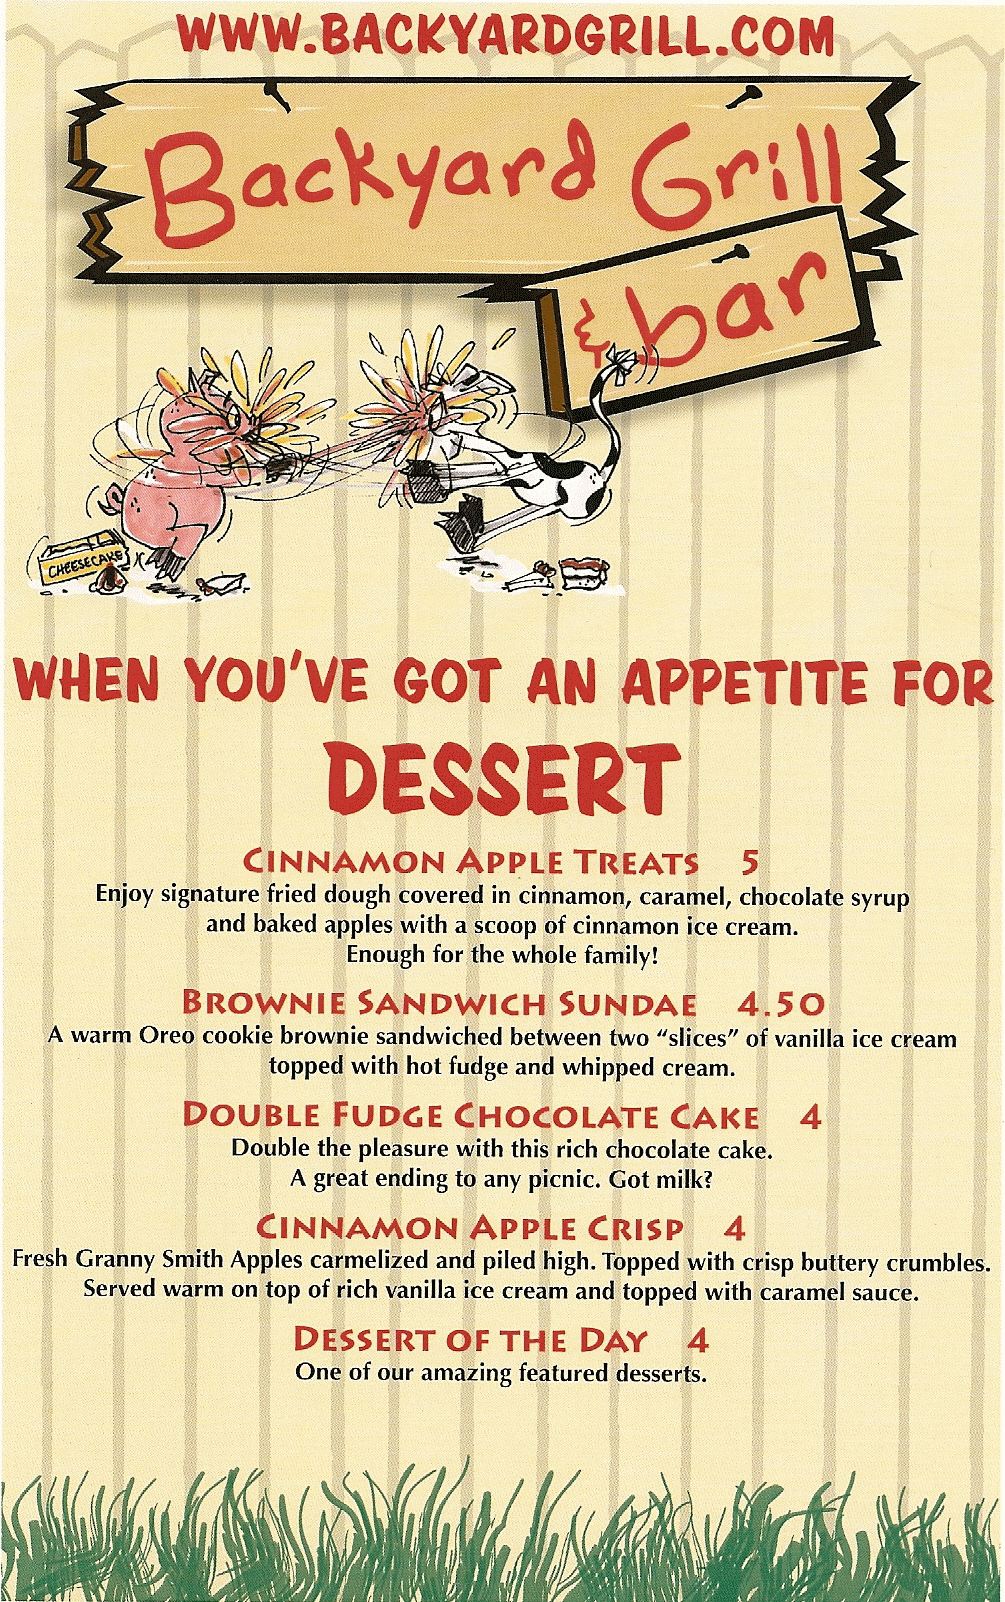 backyard grill and bar dessert menu 87125